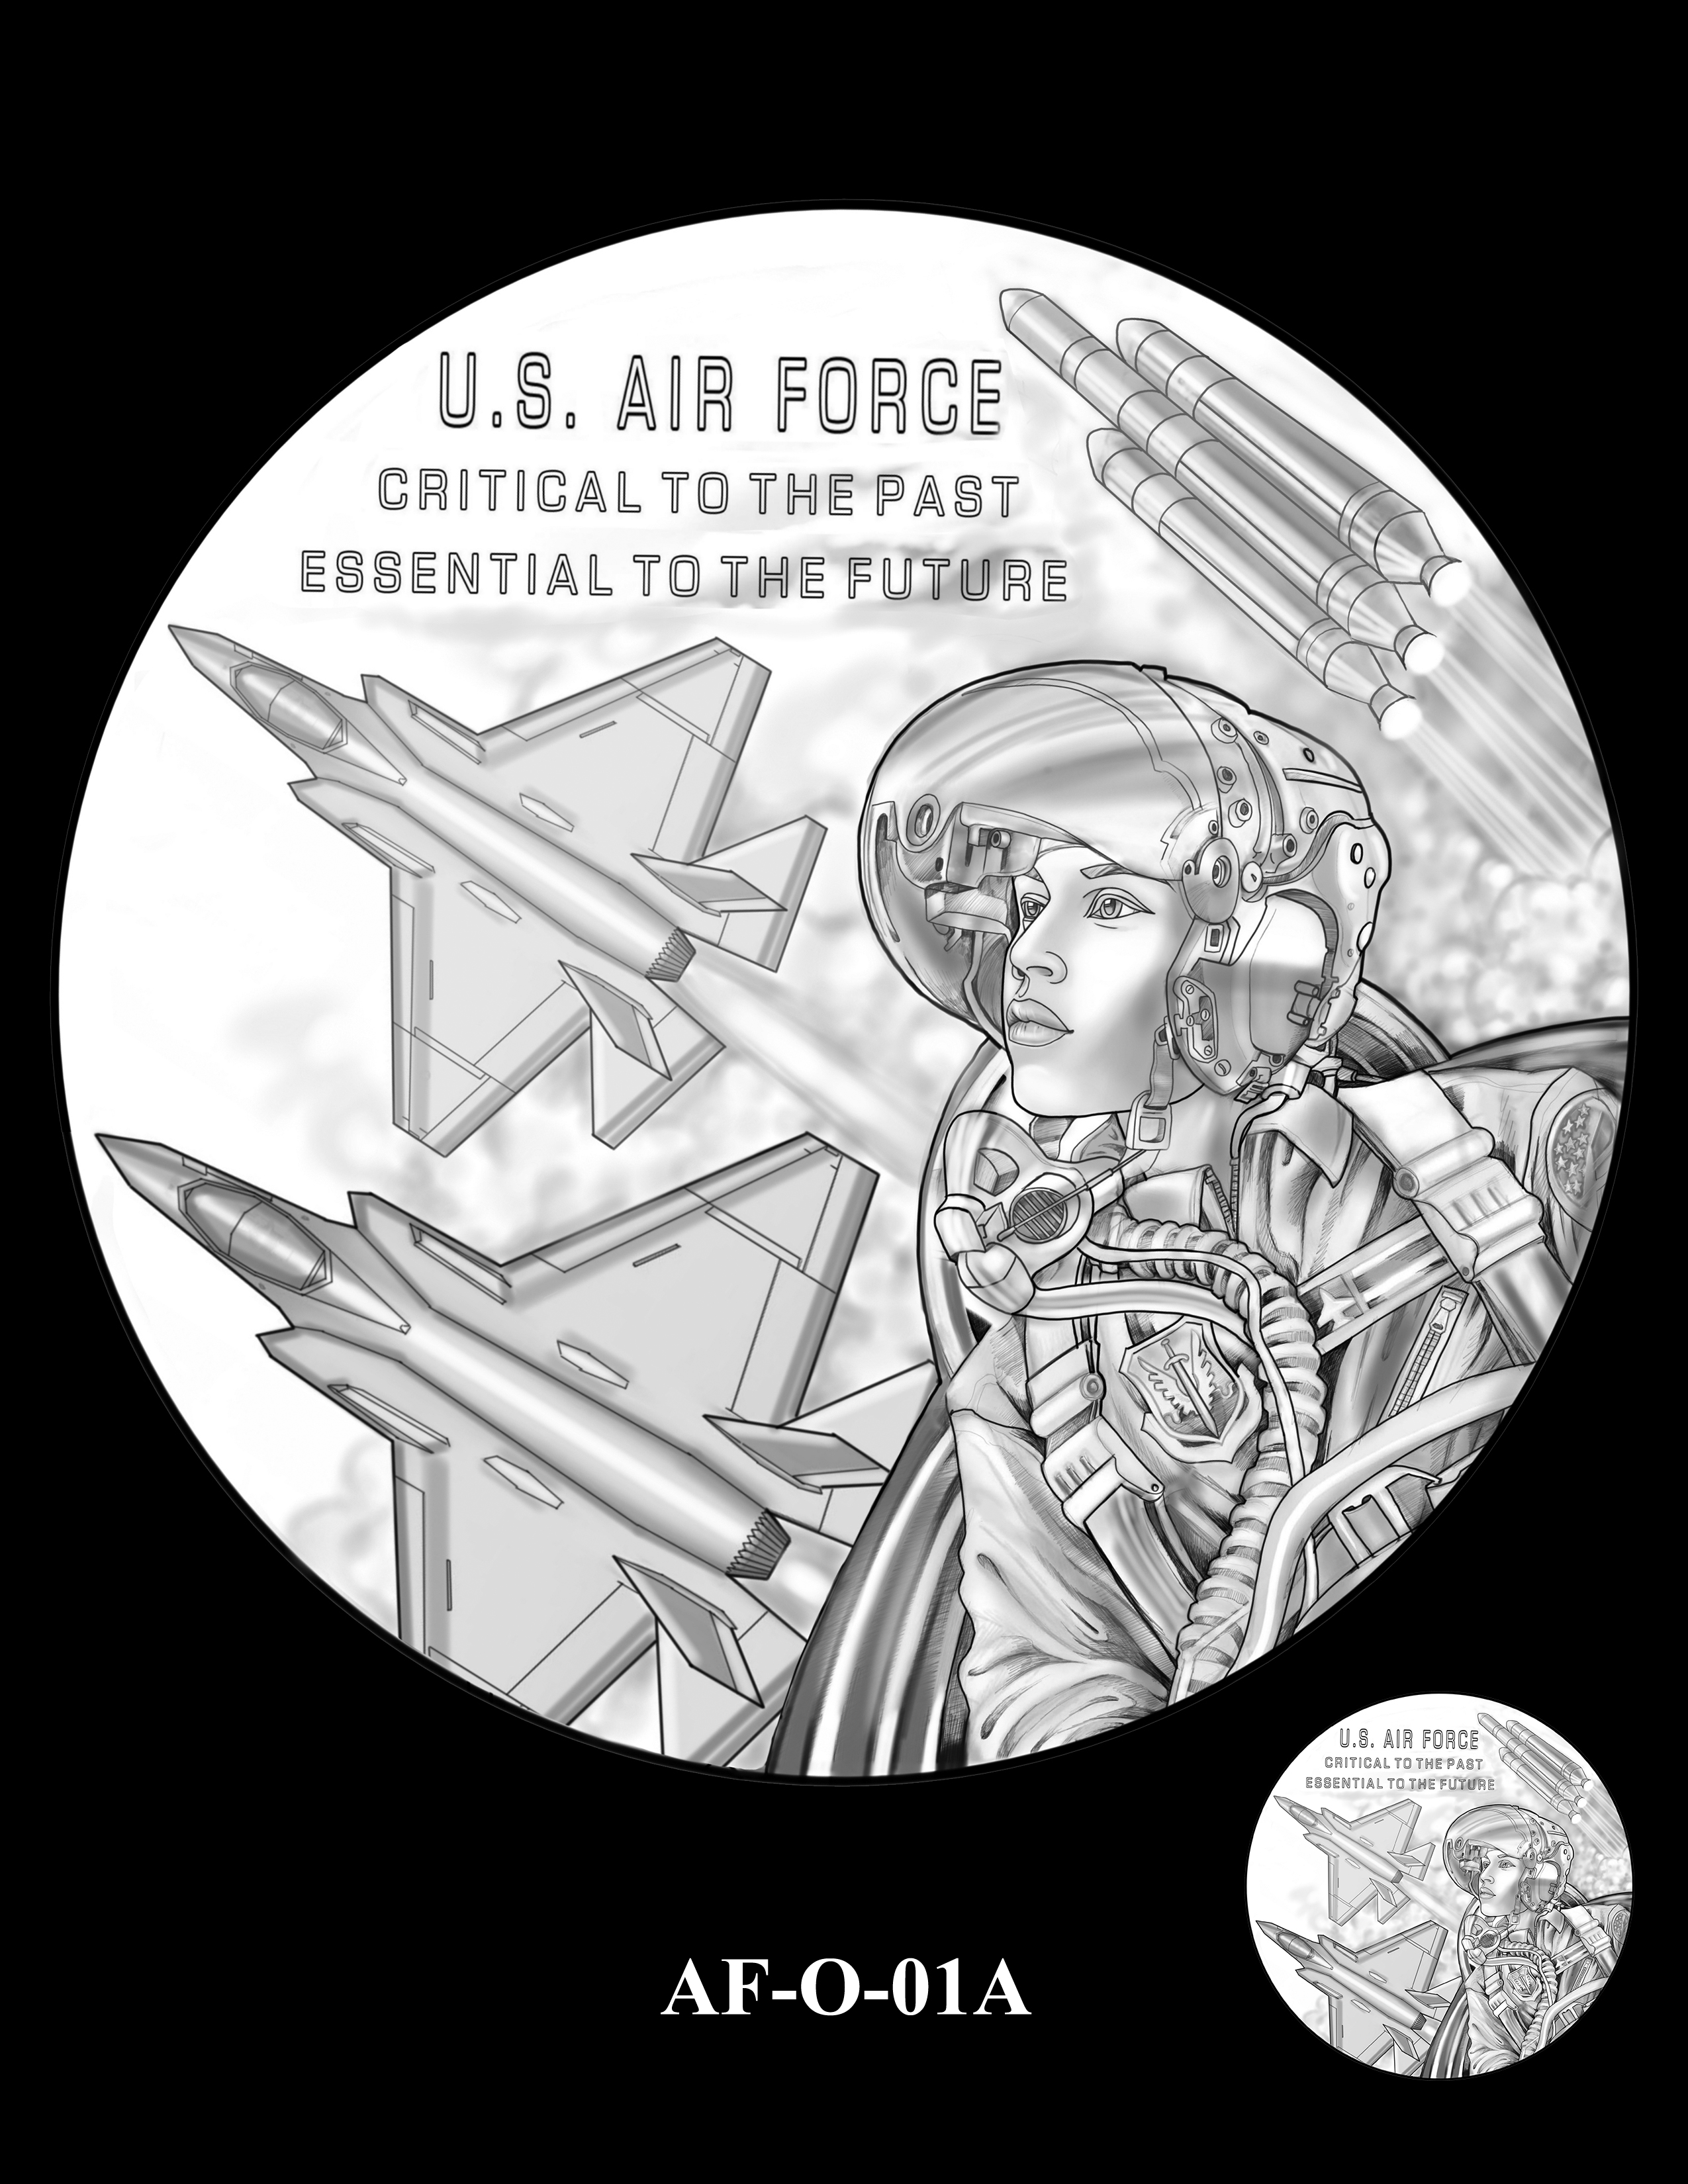 AF-O-01A -- Armed Forces Medal - Air Force